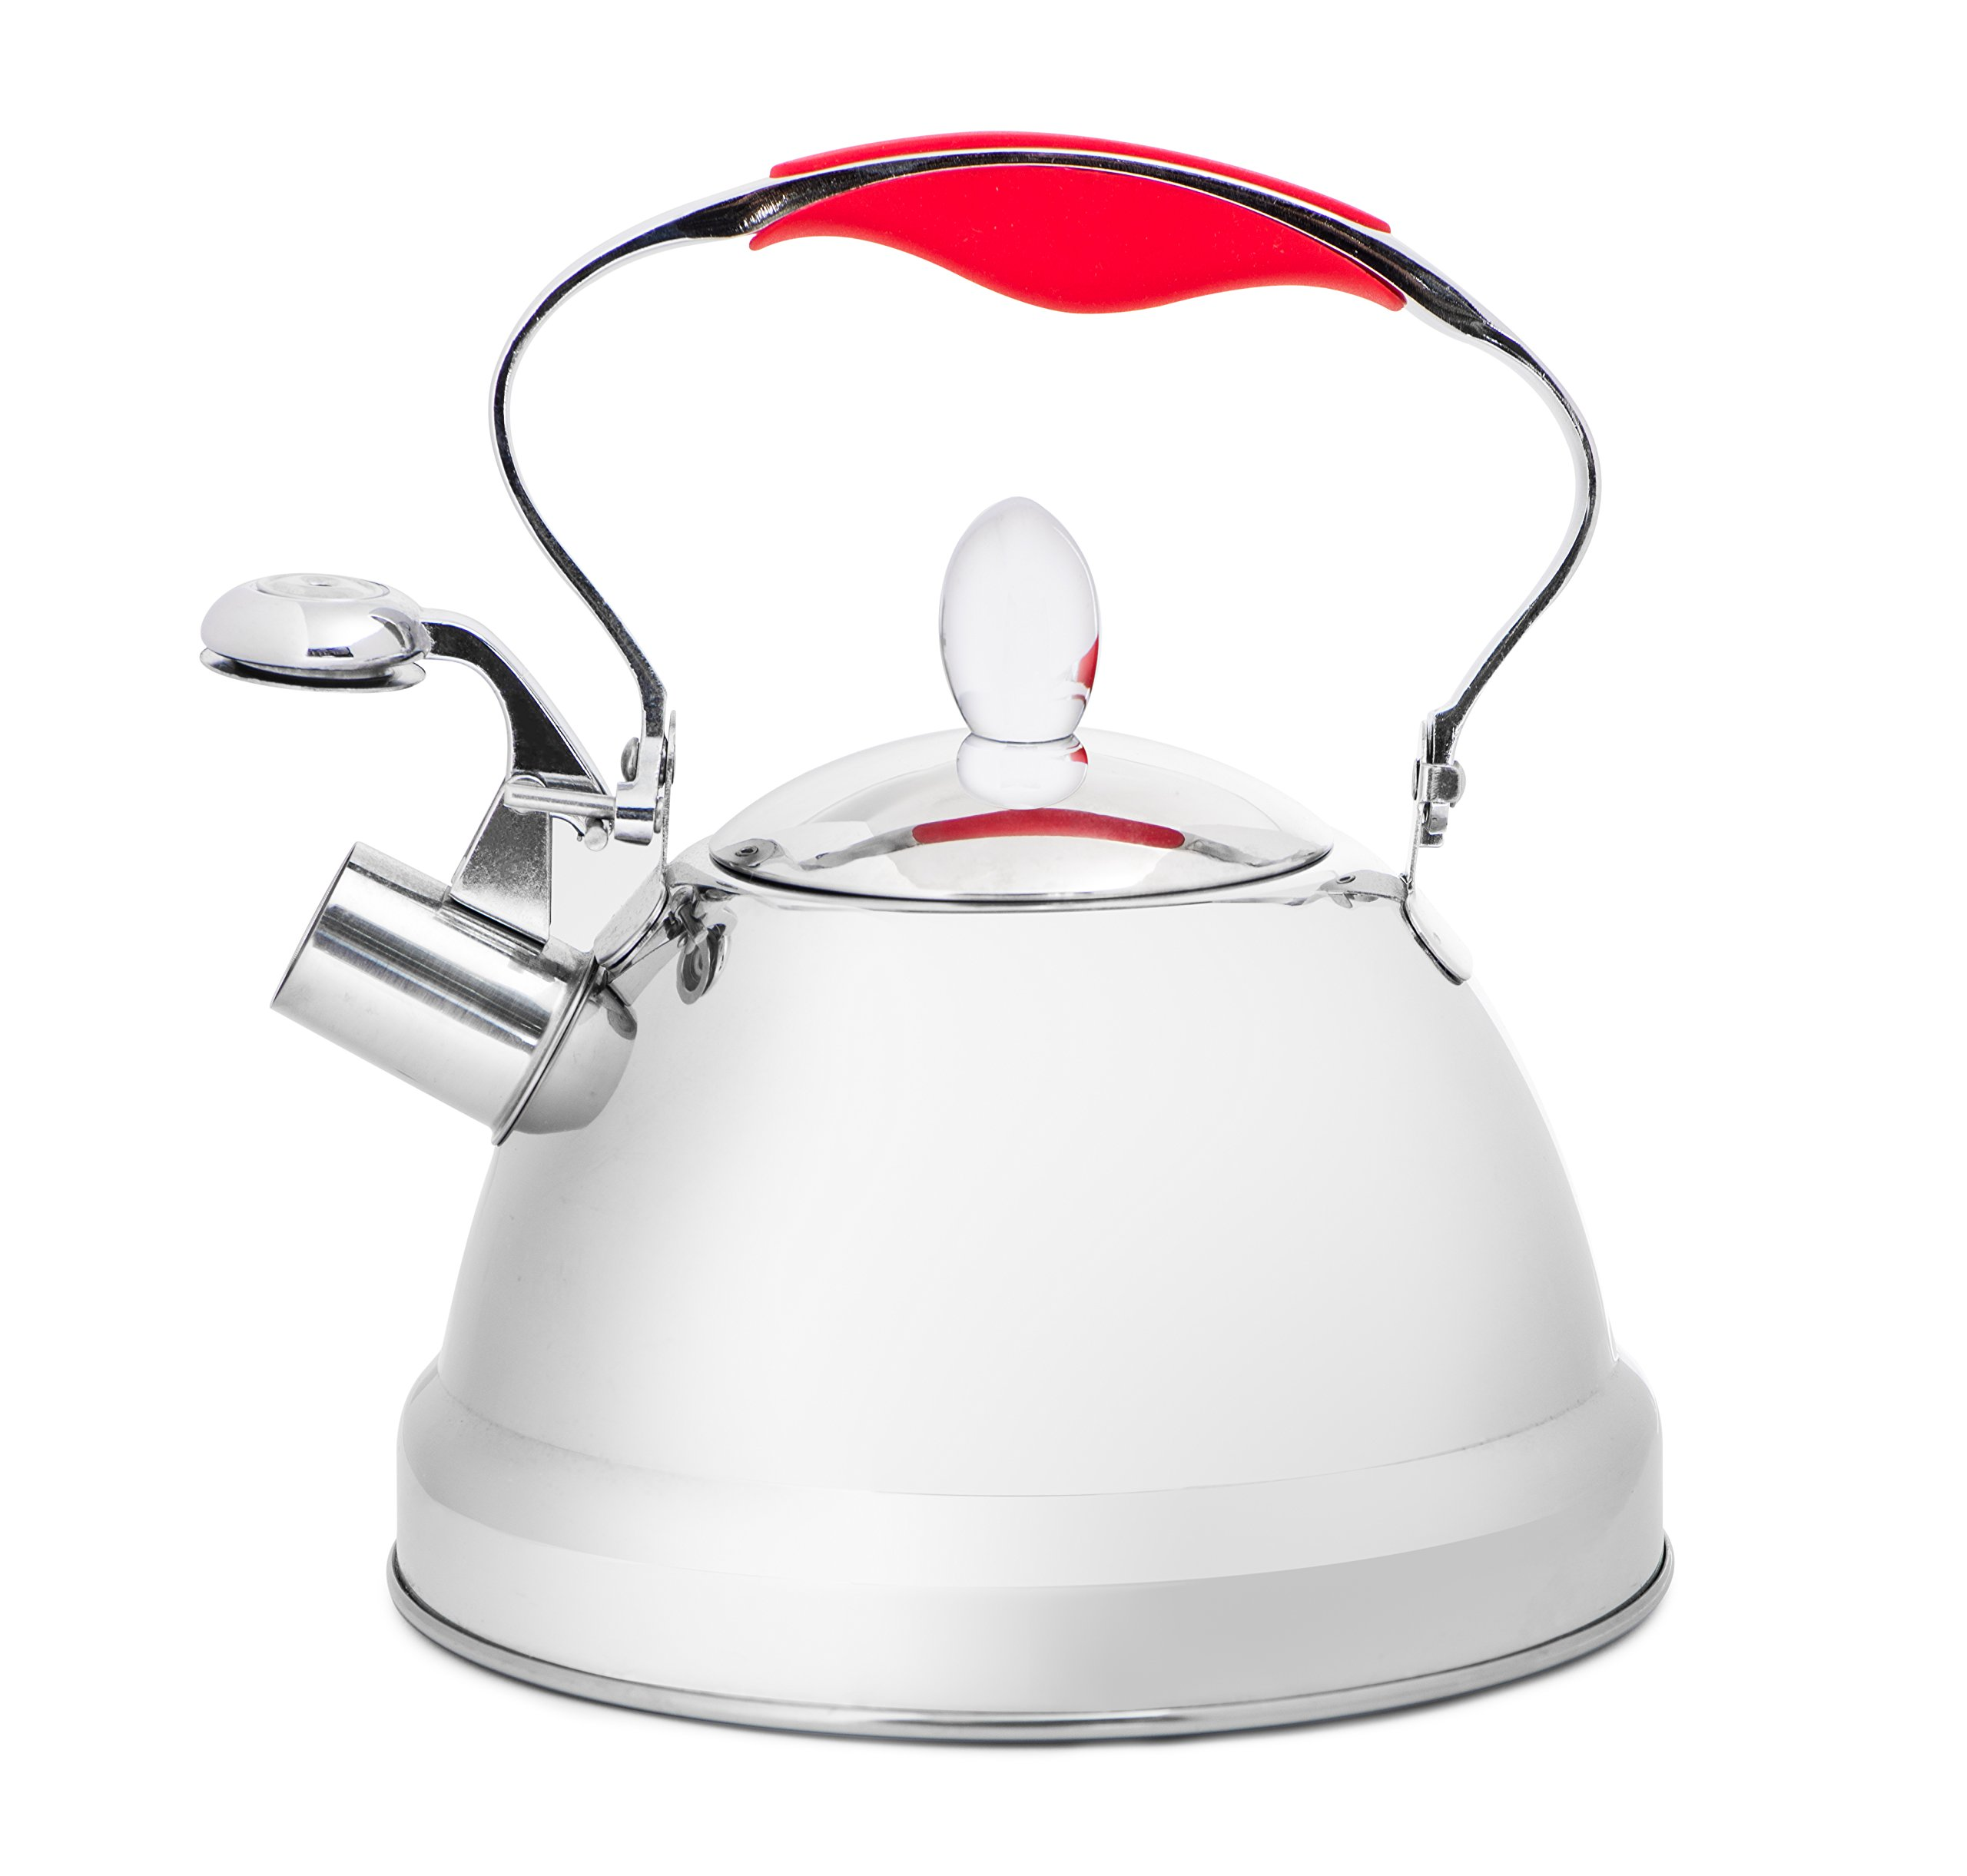 +Steel Stainless Steel Whistling Tea Kettle 2.5Qt, Stove Top Kettle Teapot with 5-ply Capsule Bottom